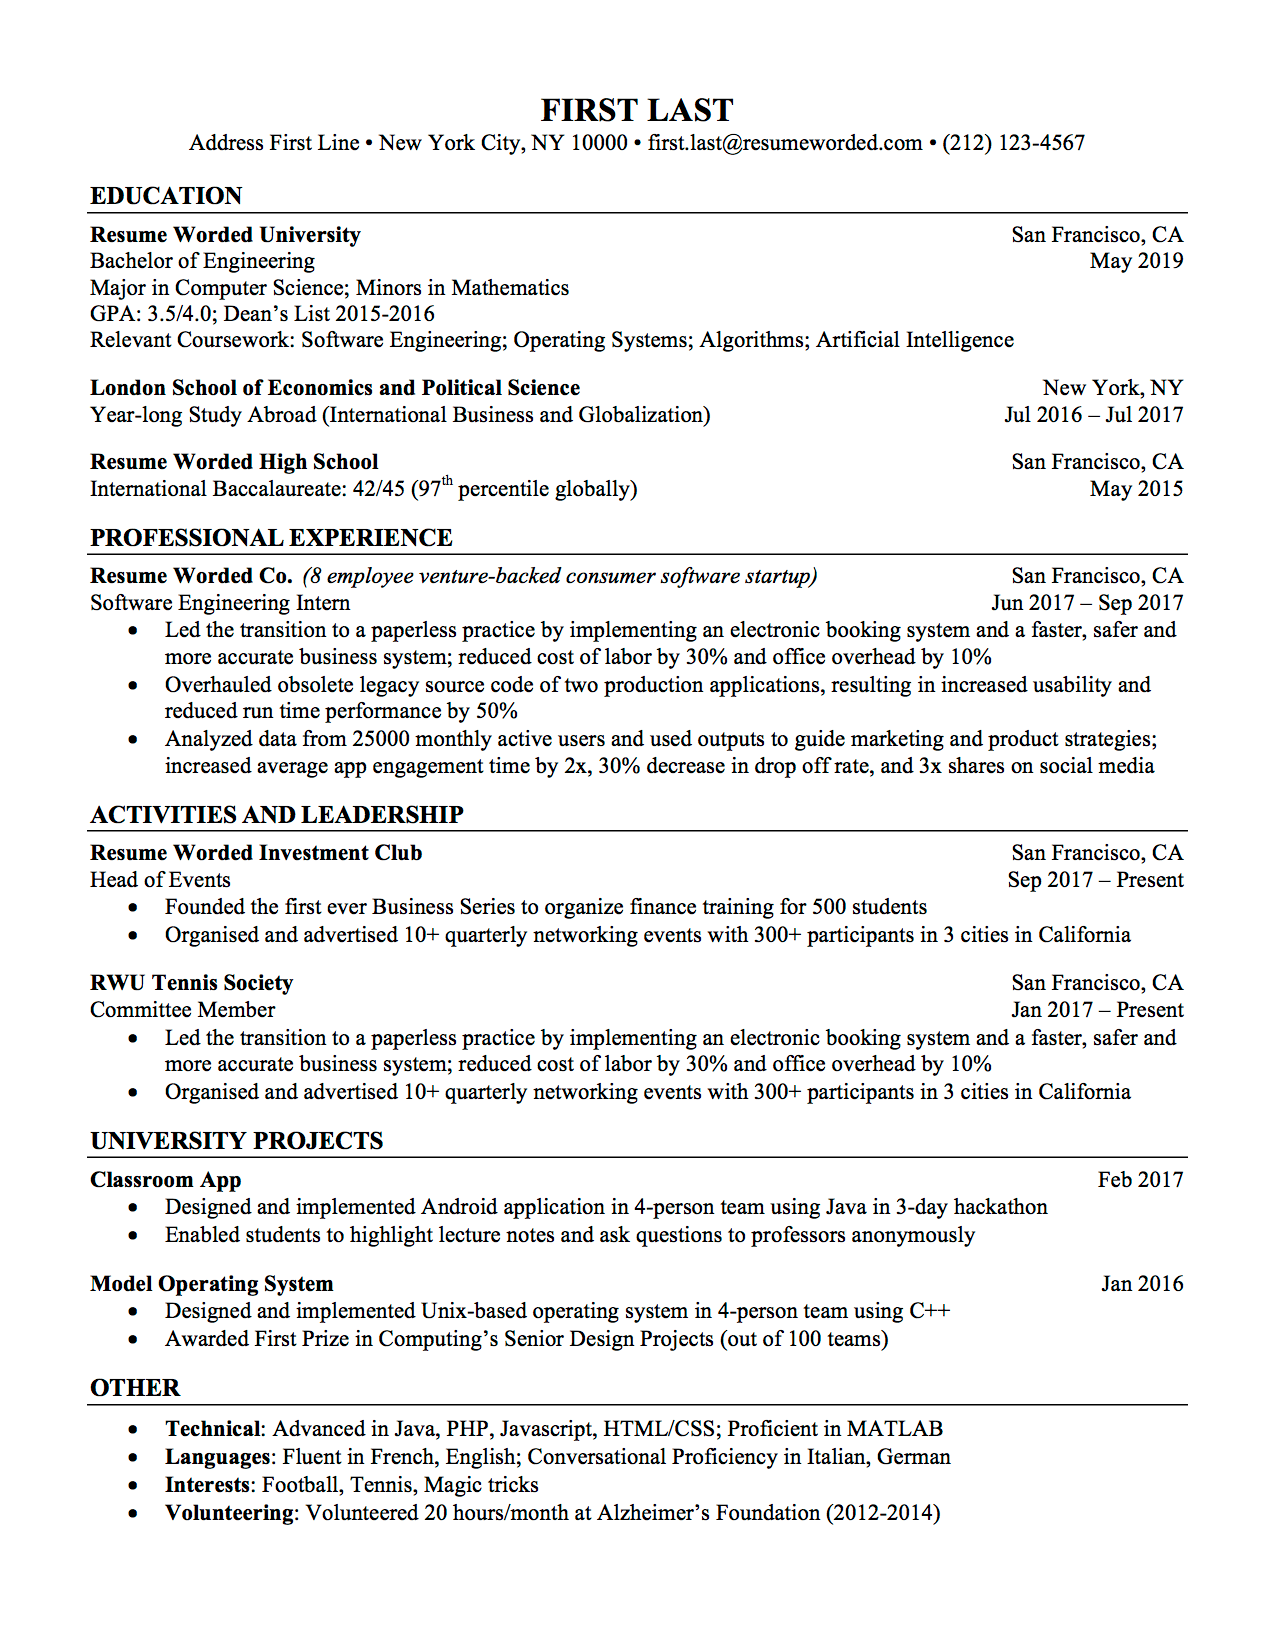 Professional Resumes Templates Free in 2020 Resume